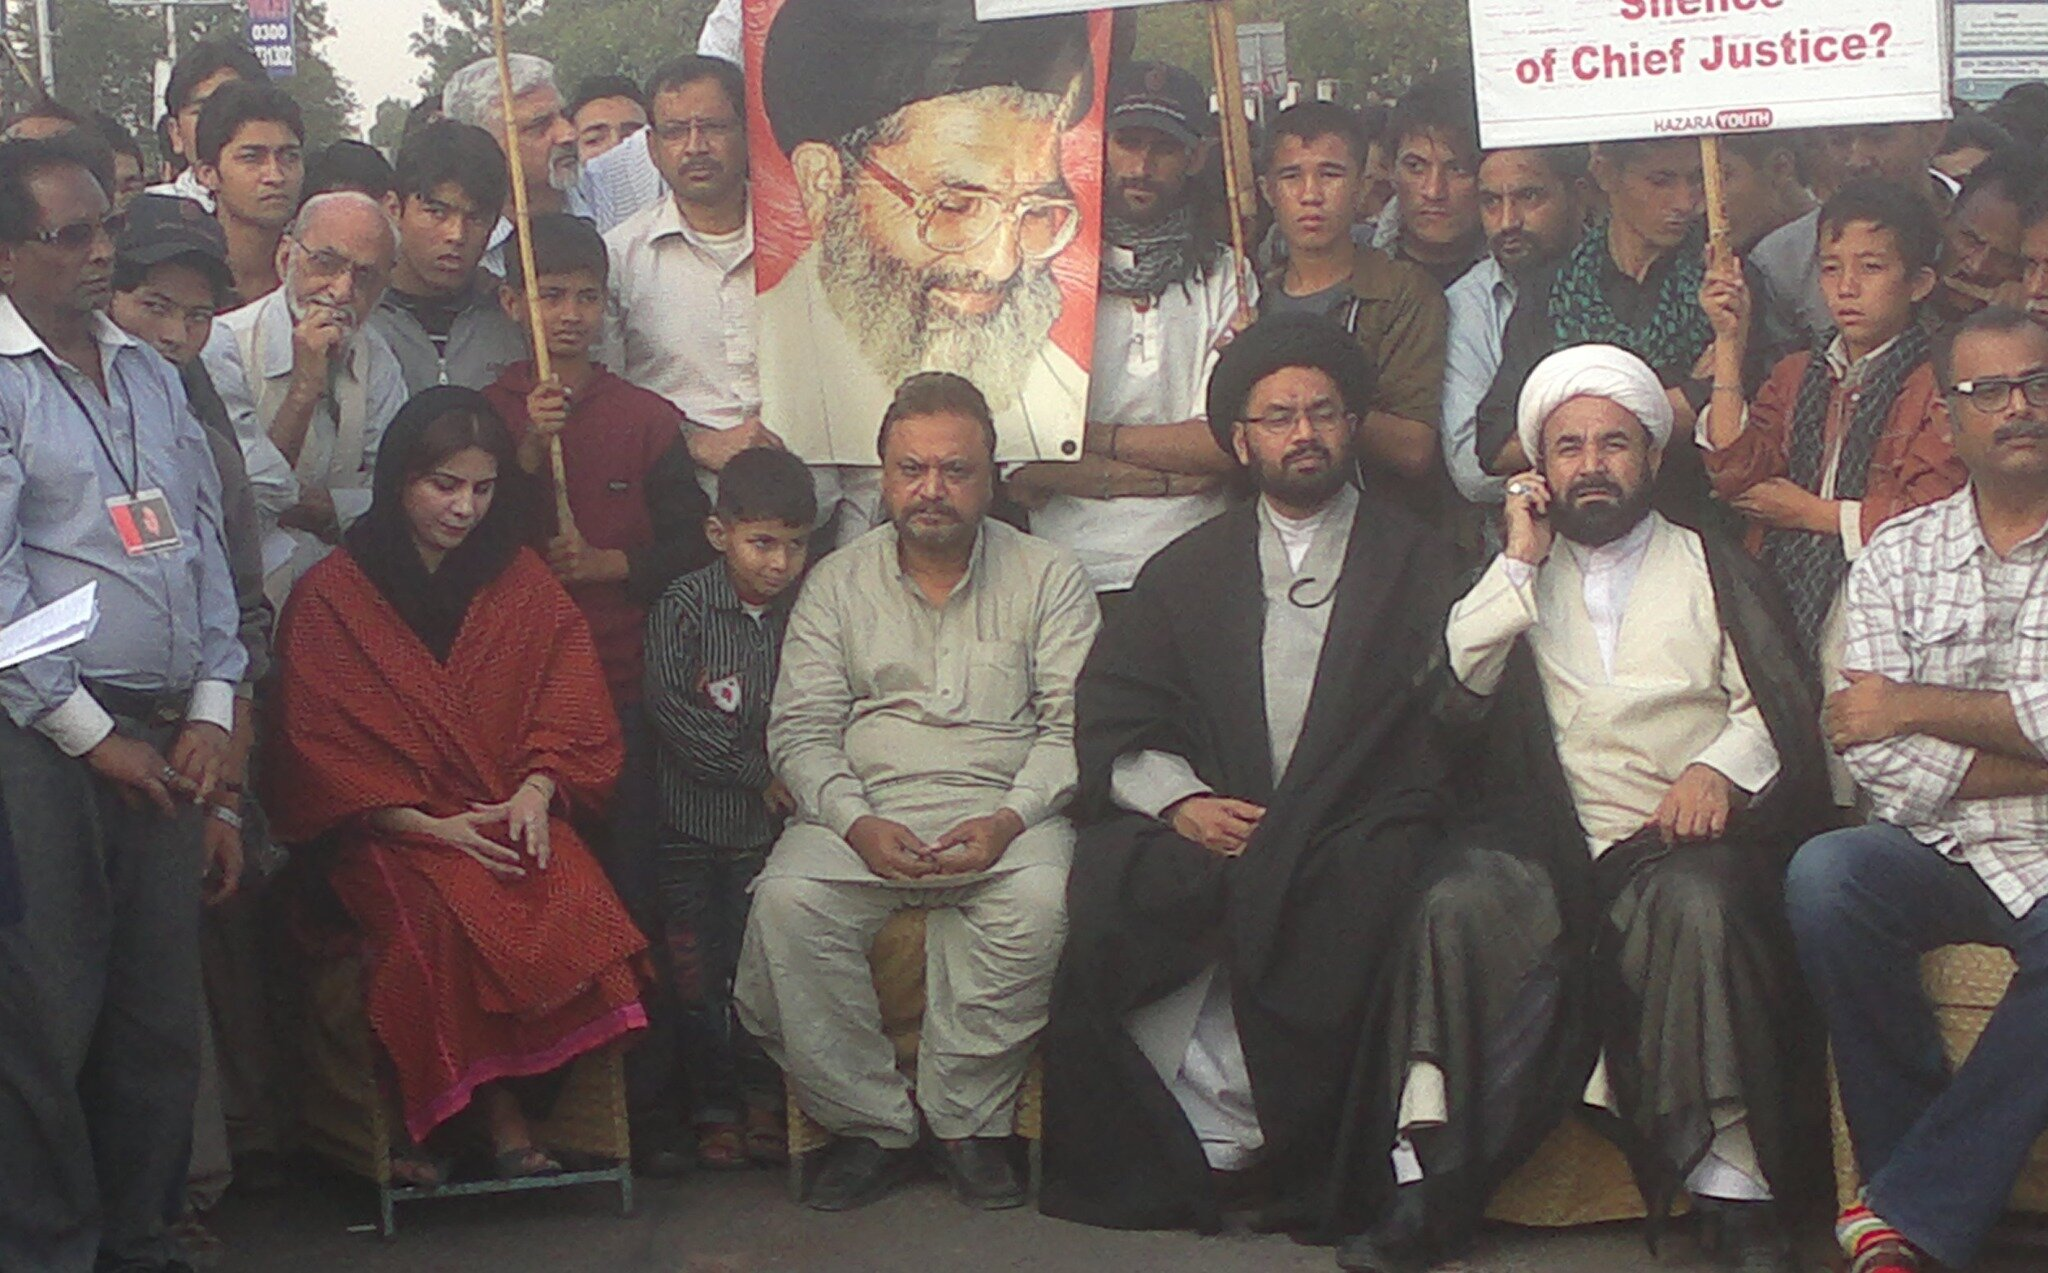 #PTI Naz Baloch at Karachi Dharna, Against barbaric act of violence targeting innocent people in Quetta #ShiaGenocide http://t.co/Wx6nTzNP